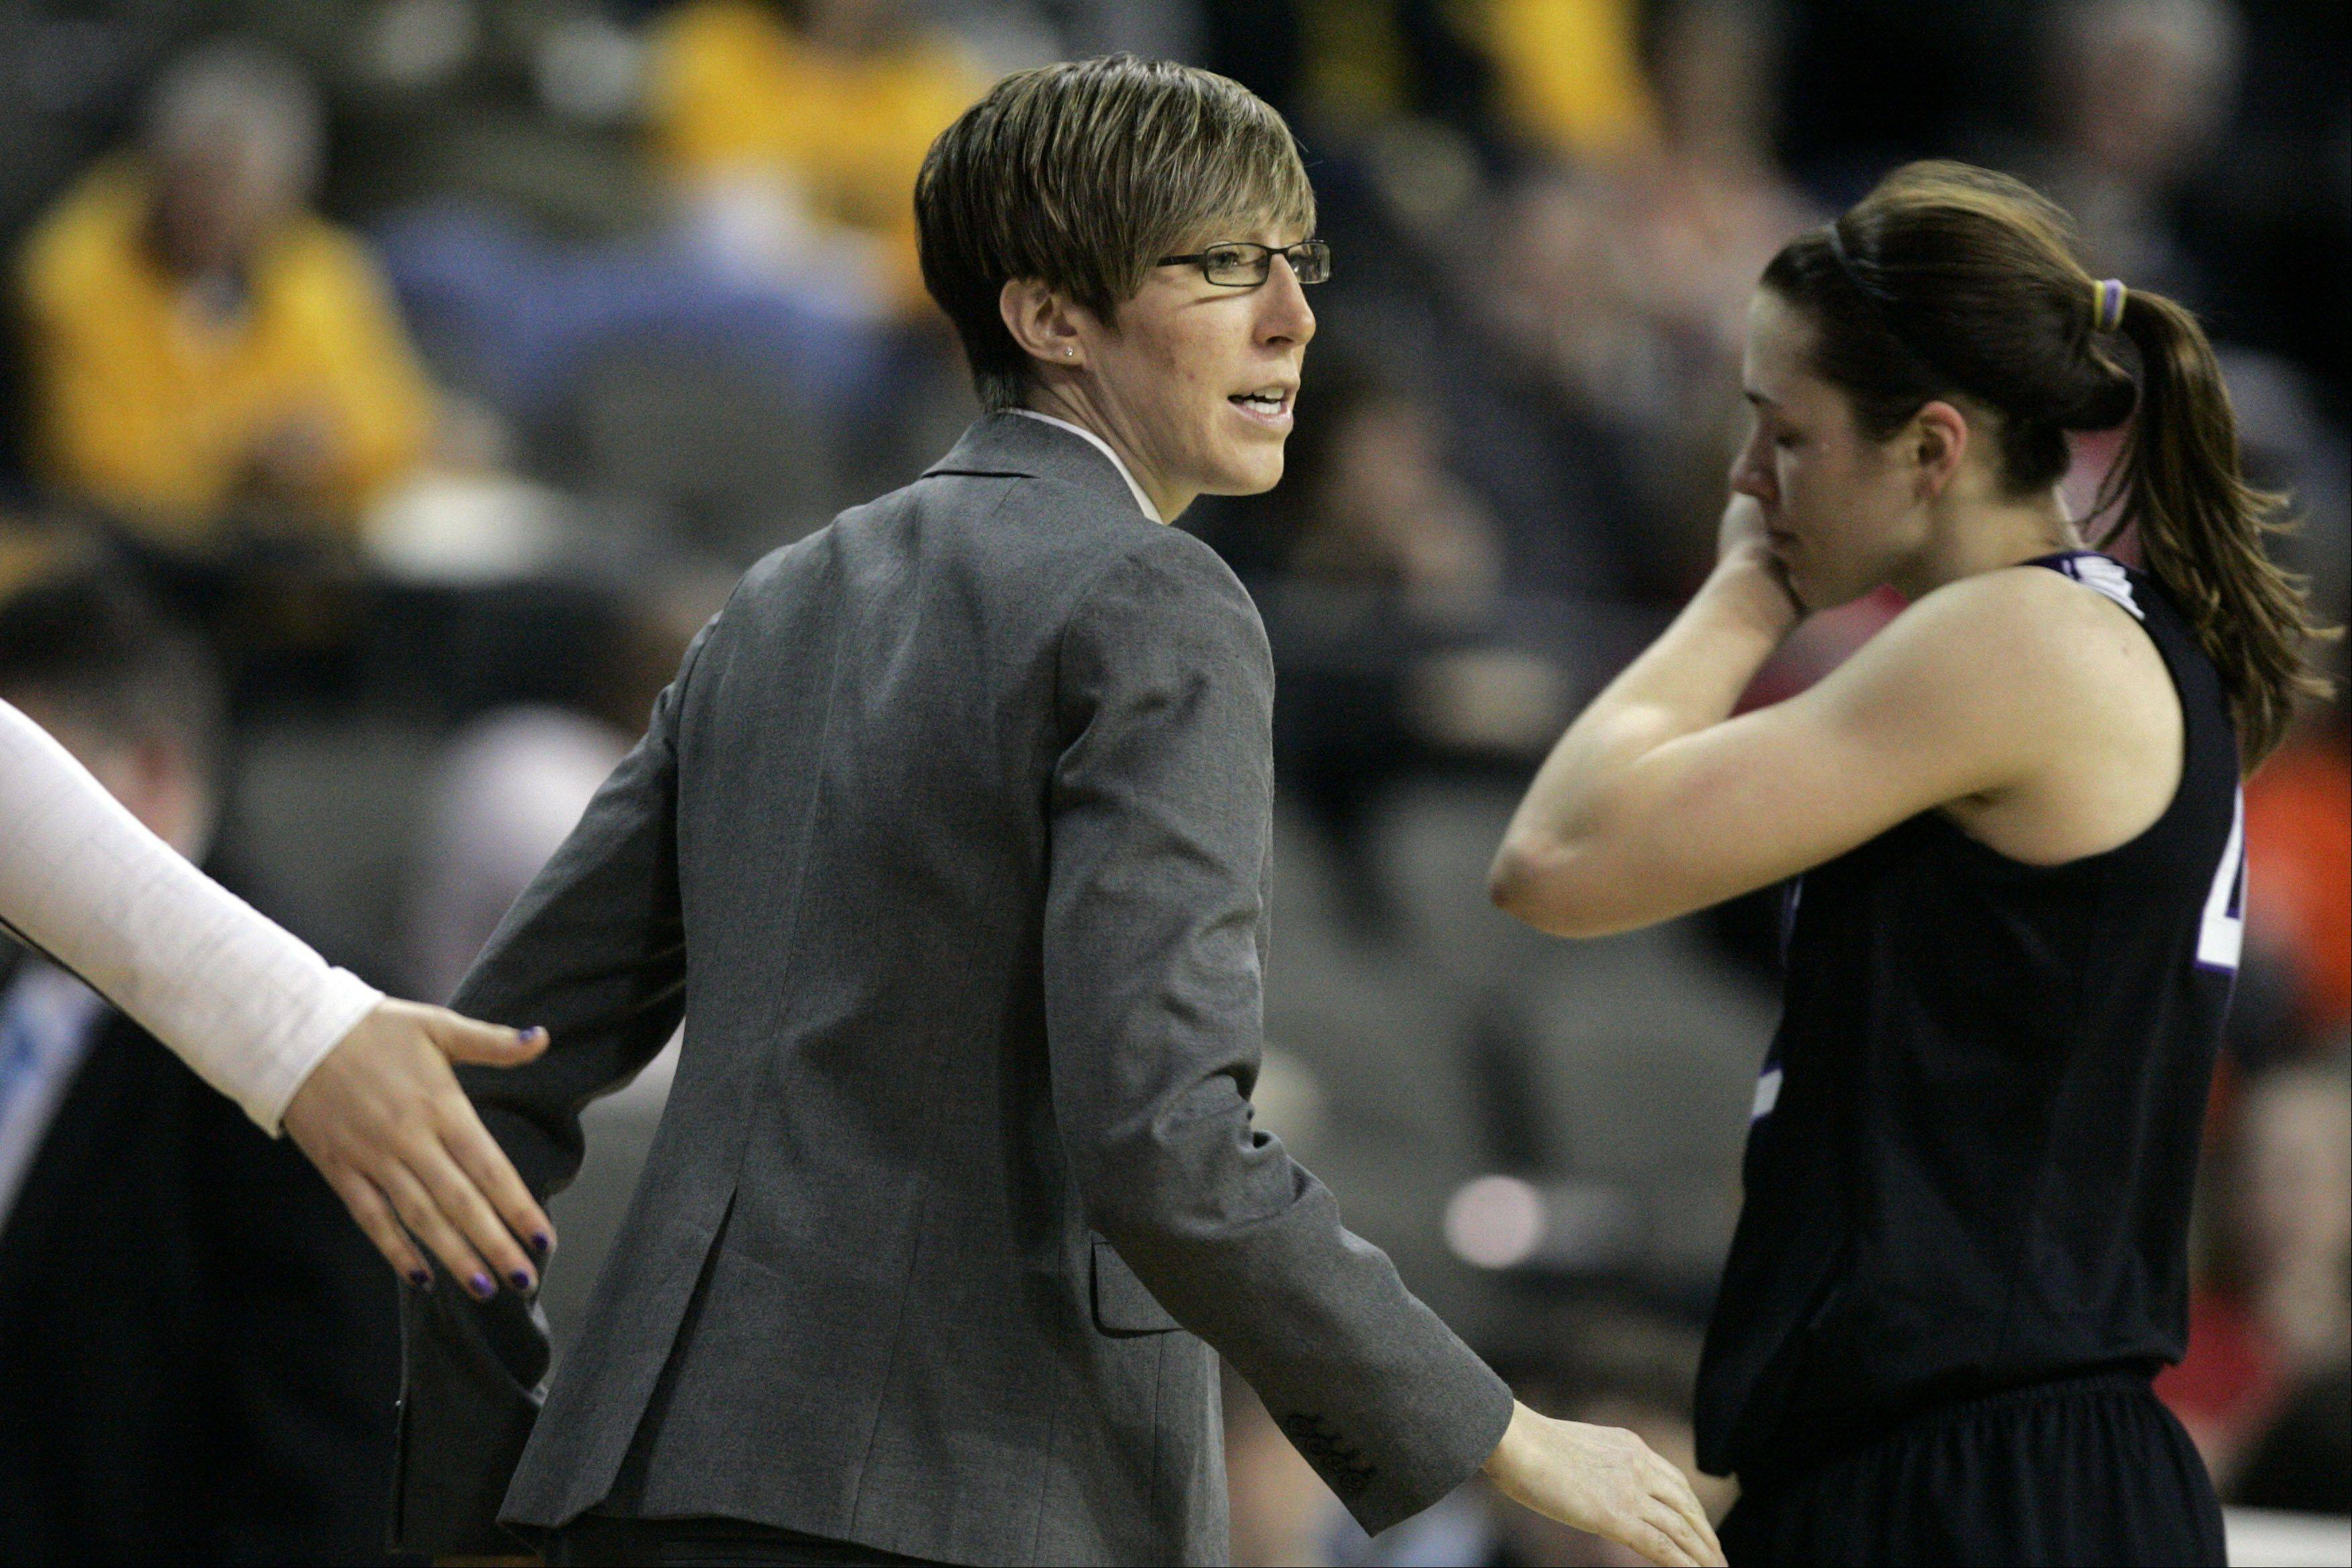 Northwestern assistant coach Allison Guth talks to her team during action Thursday at the Big Ten Women's Basketball Tournament at the Sears Centre.